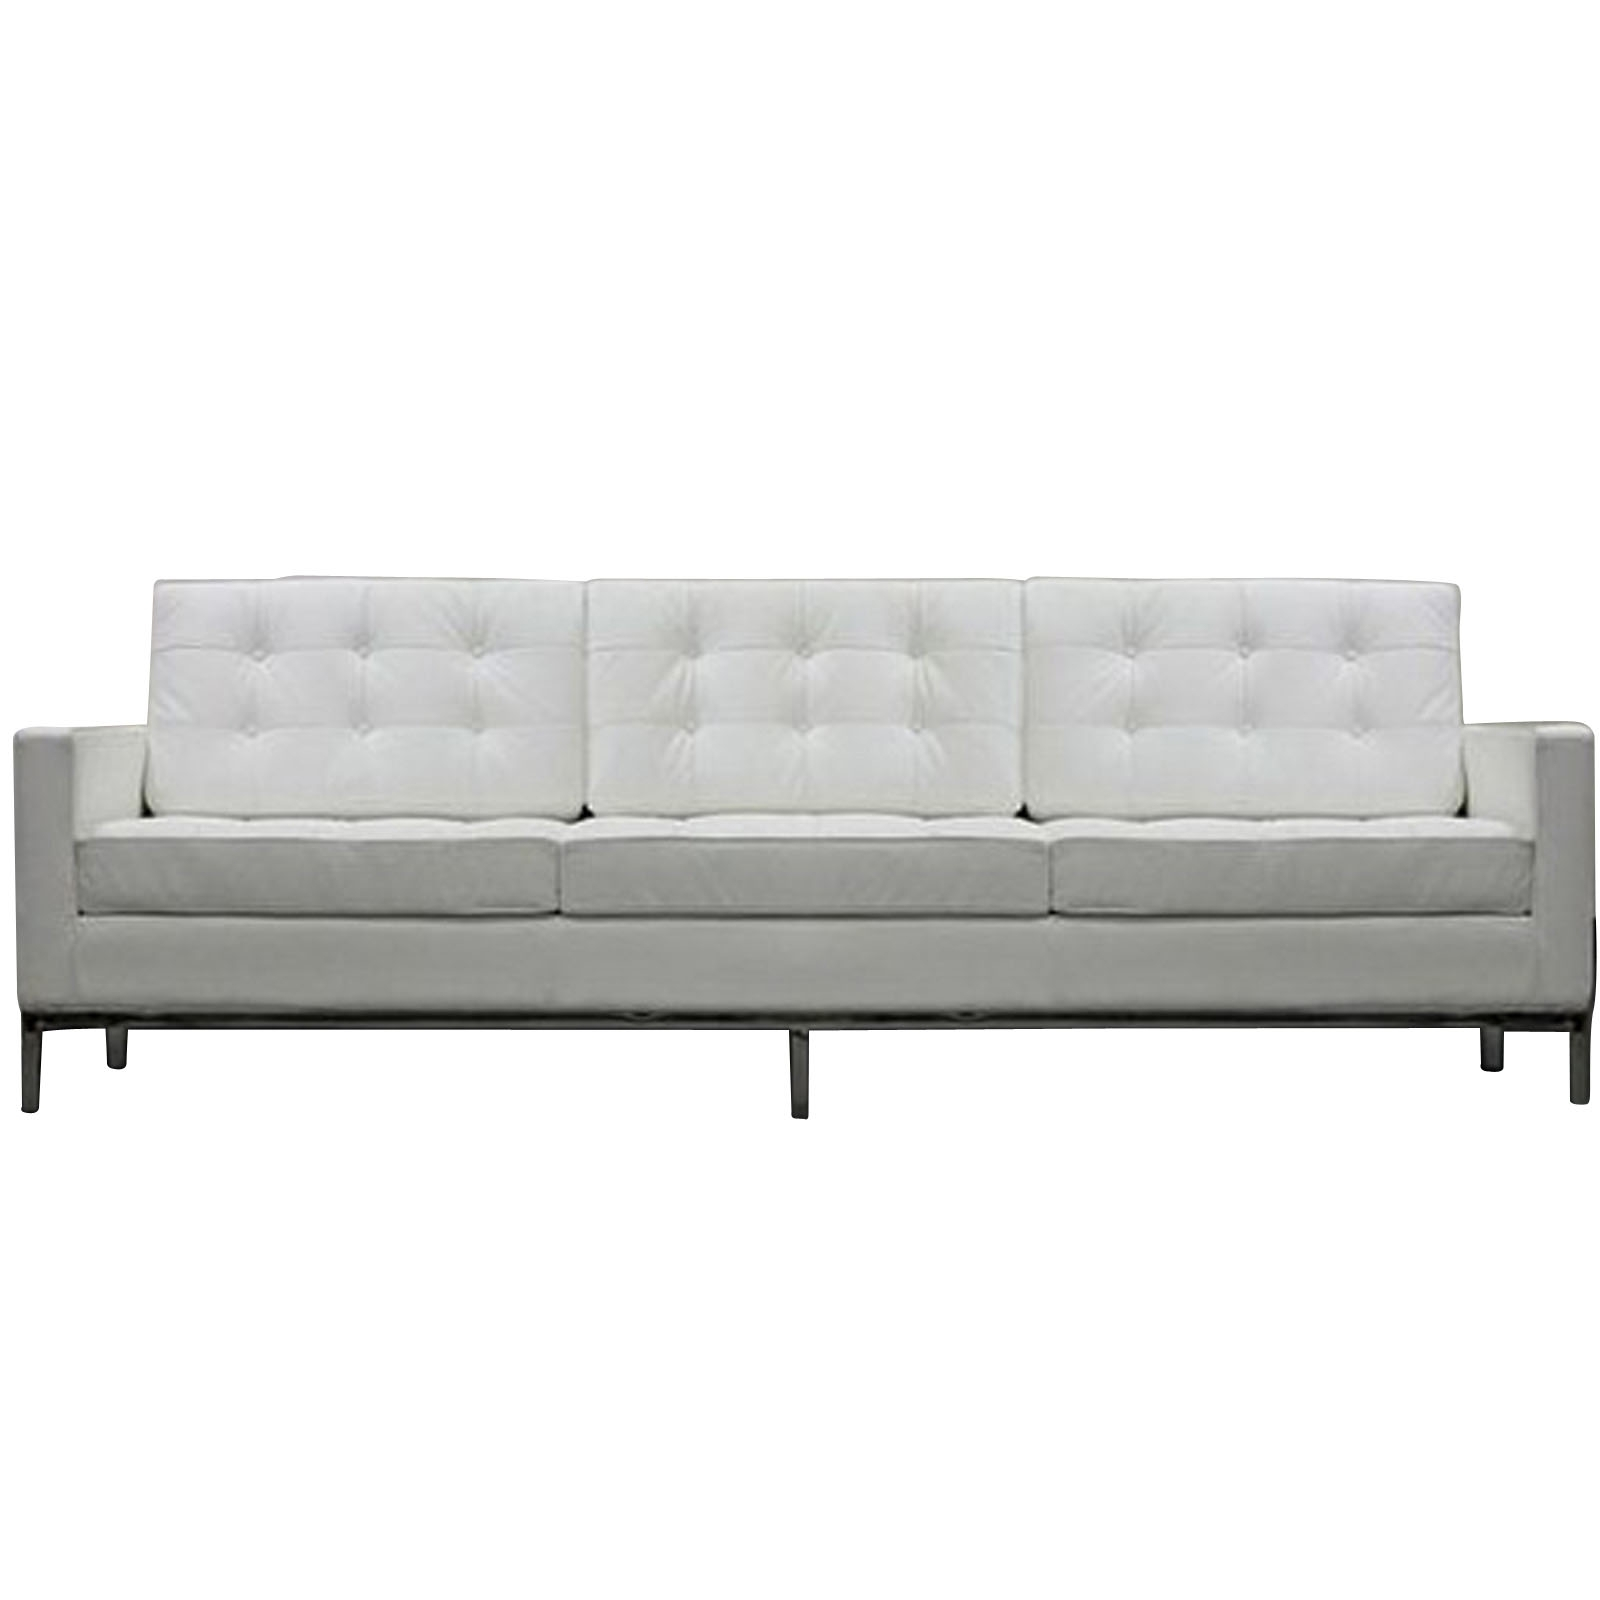 Florence Knoll Style Sofa Couch – Leather Intended For Well Liked Florence Knoll Style Sofas (View 4 of 15)